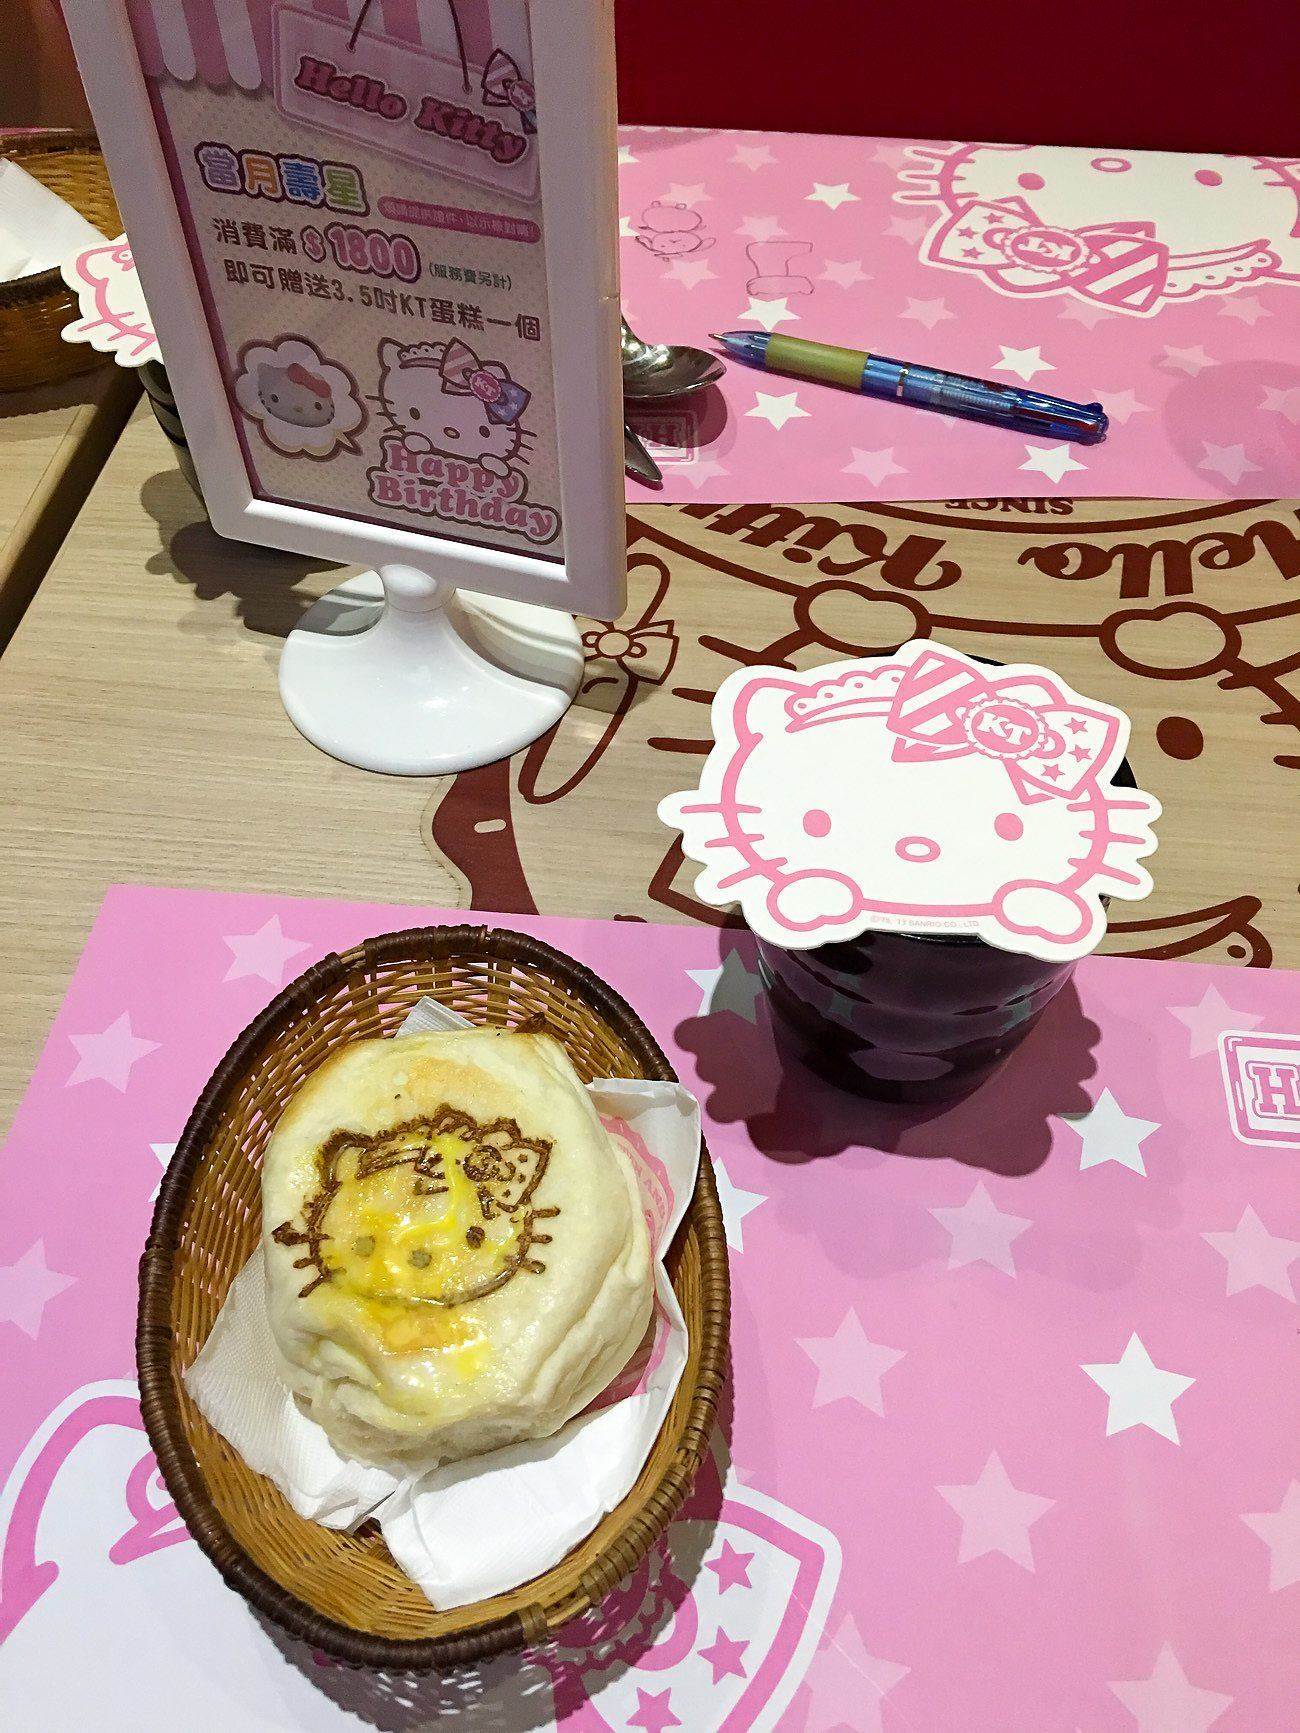 Bread course at the Hello Kitty Kitchen and Dining cafe in Taipei, Taiwan.